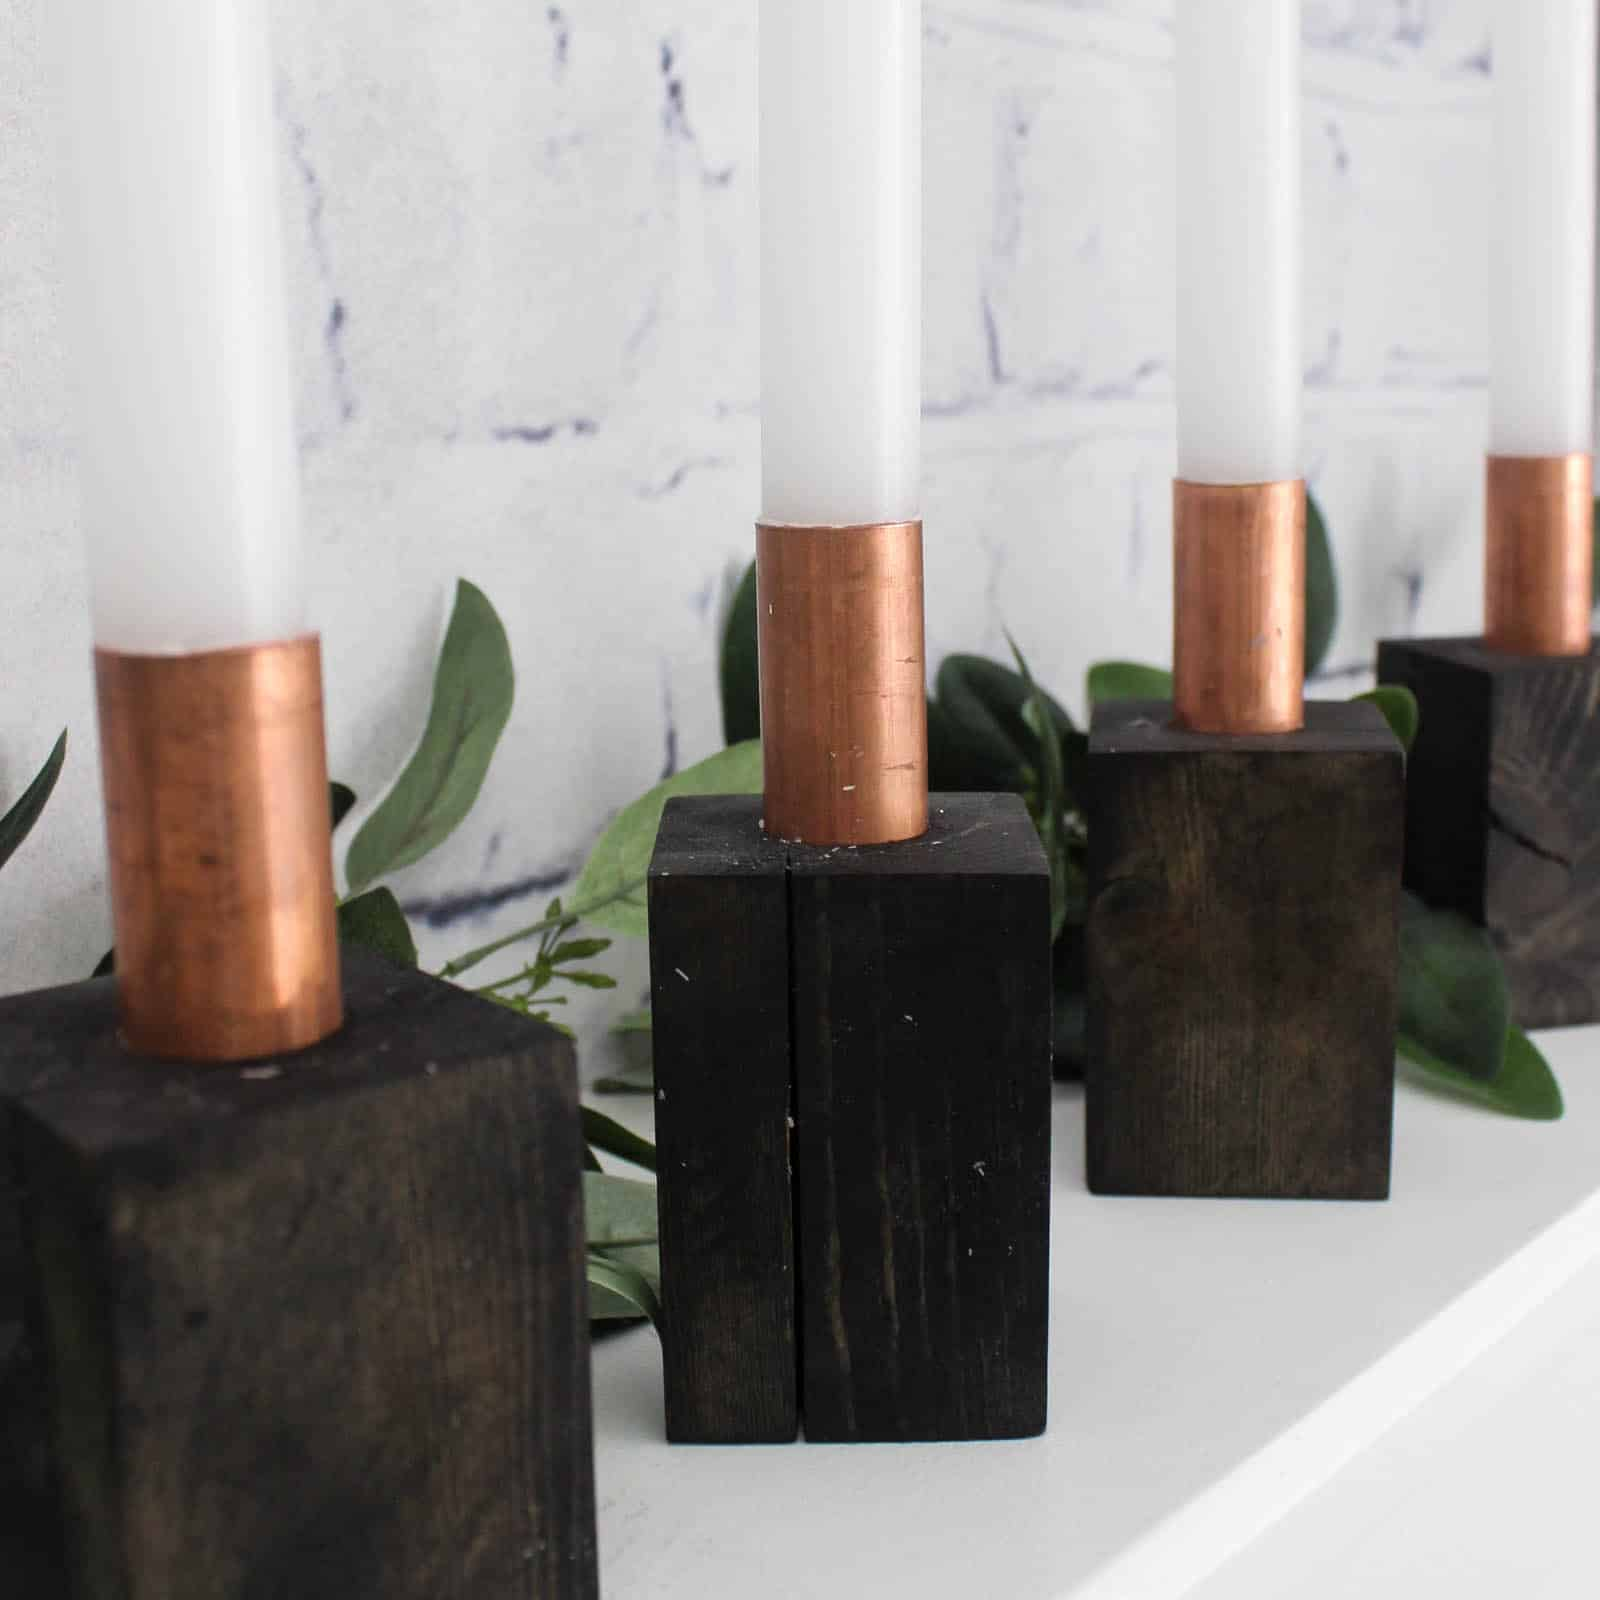 DIY Wood and Copper Candlesticks